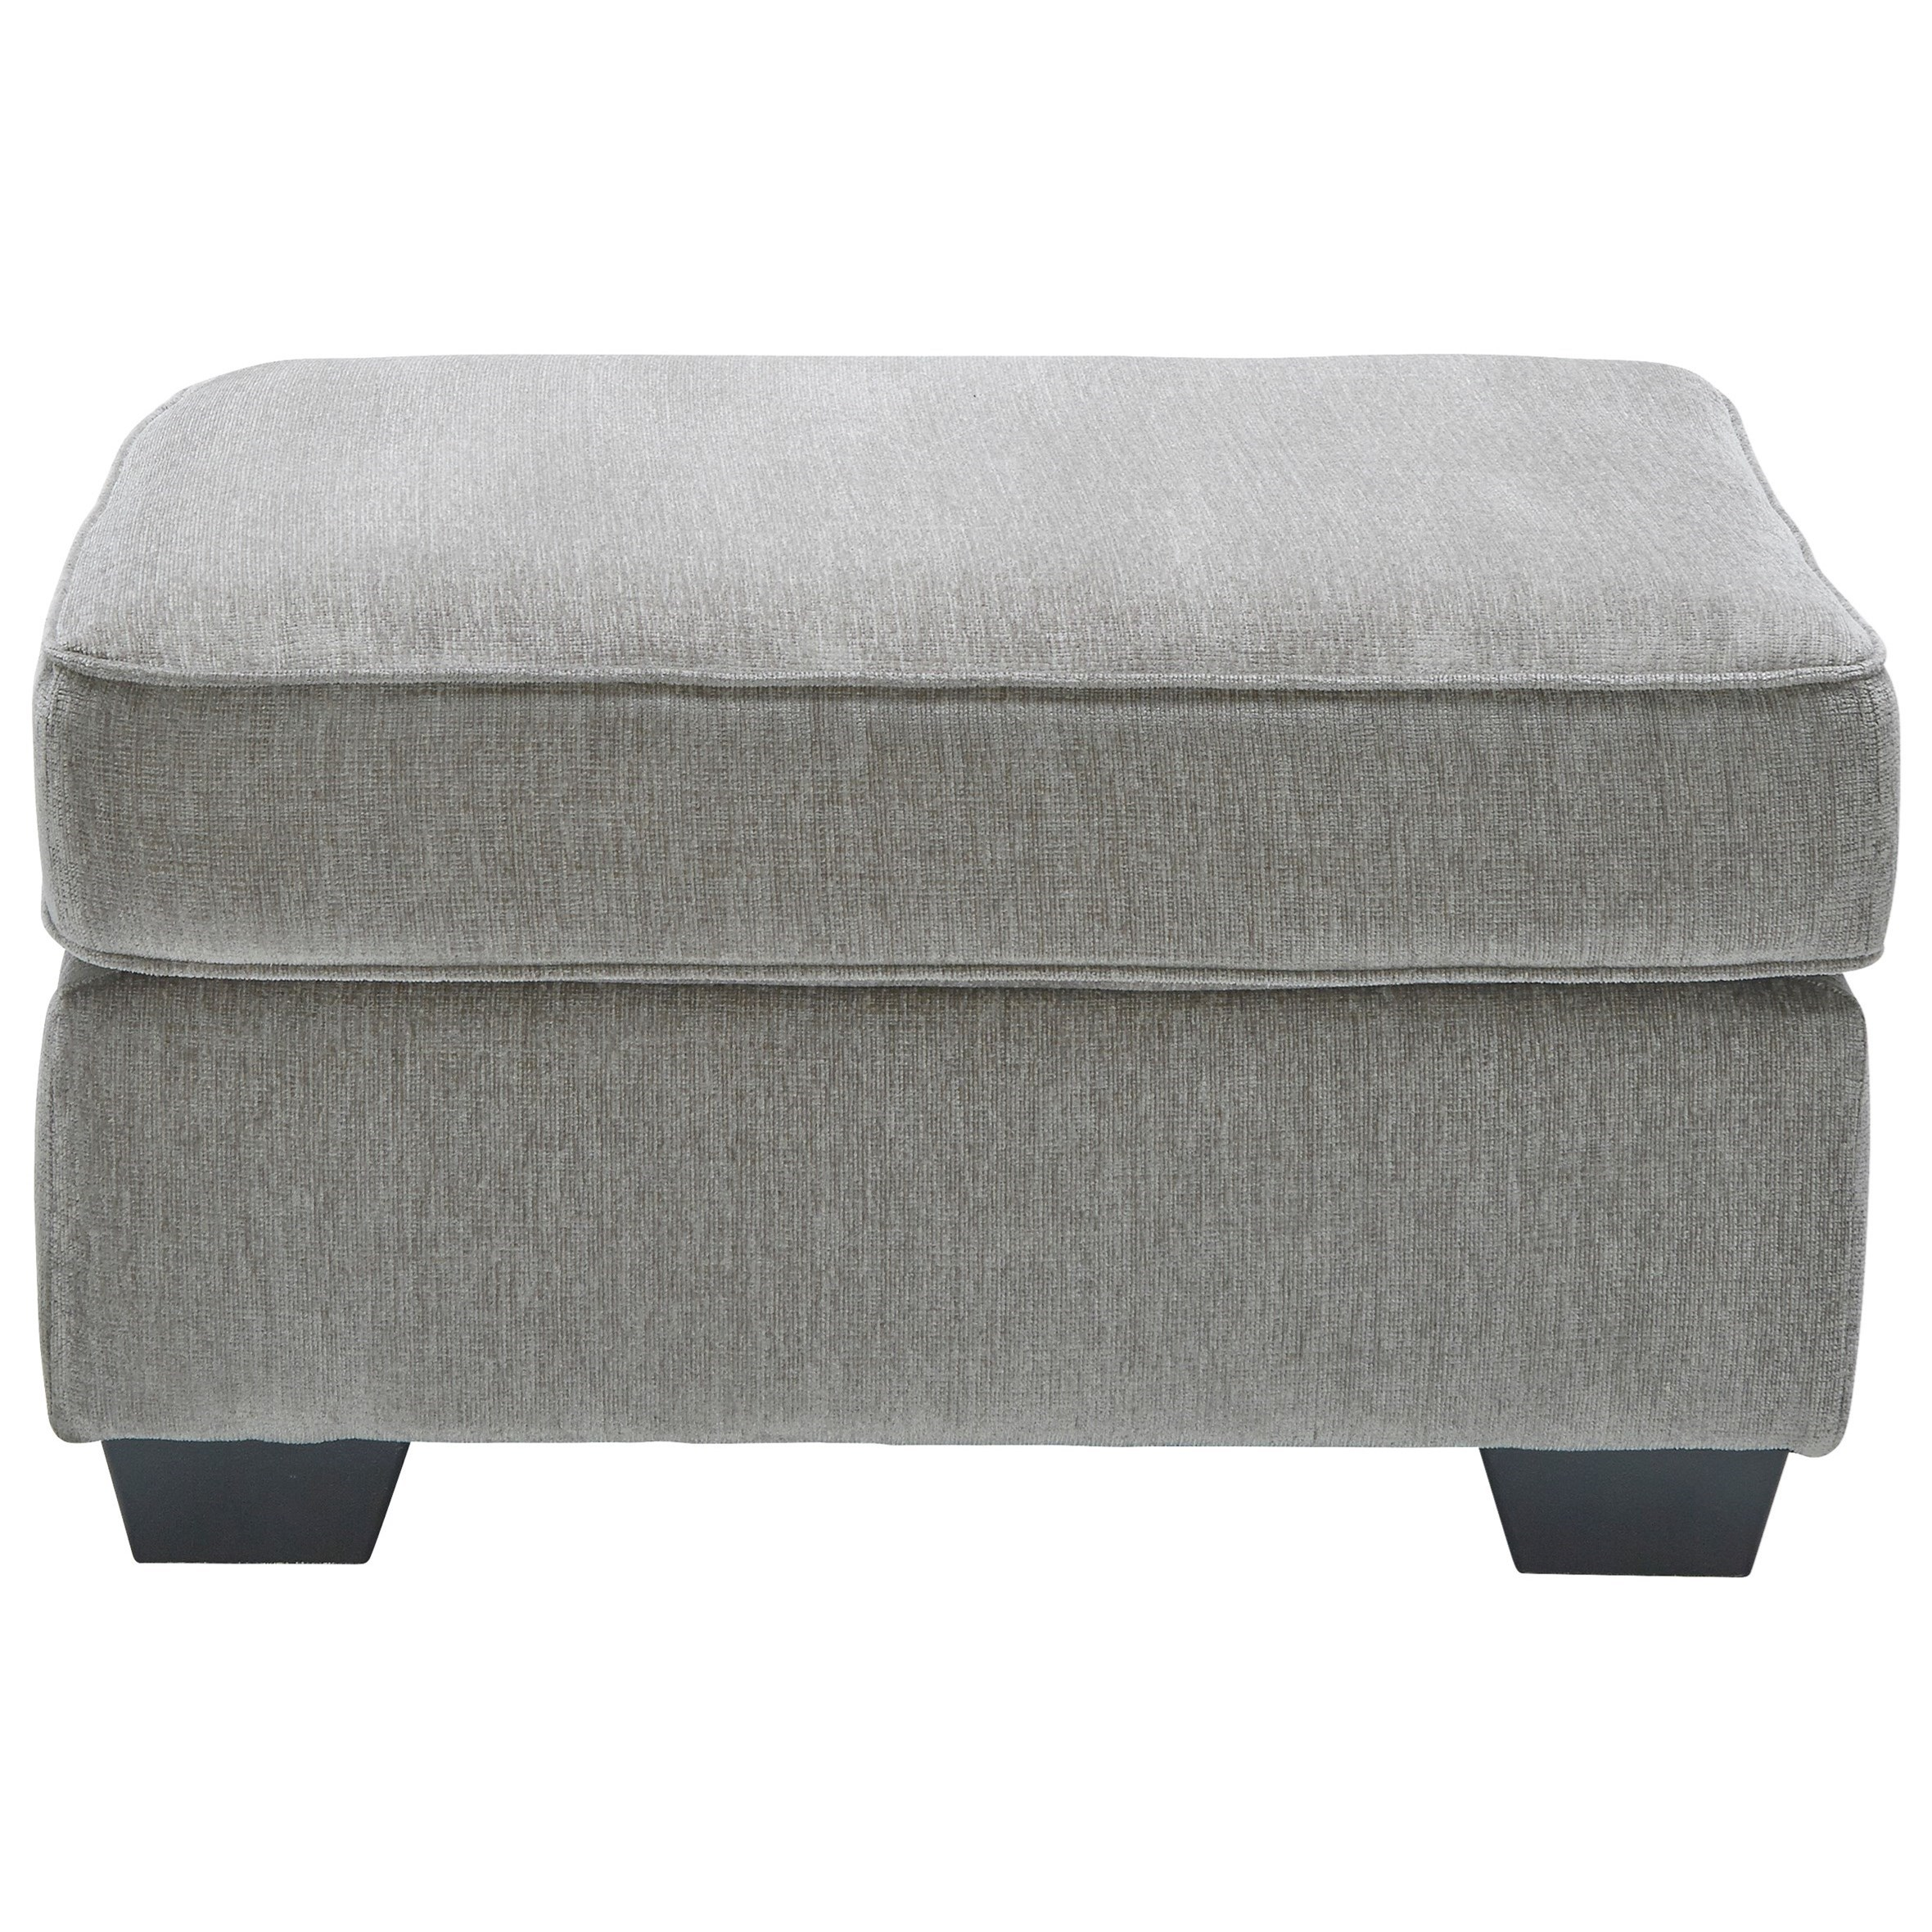 Altari Oversized Accent Ottoman by Benchcraft at Virginia Furniture Market